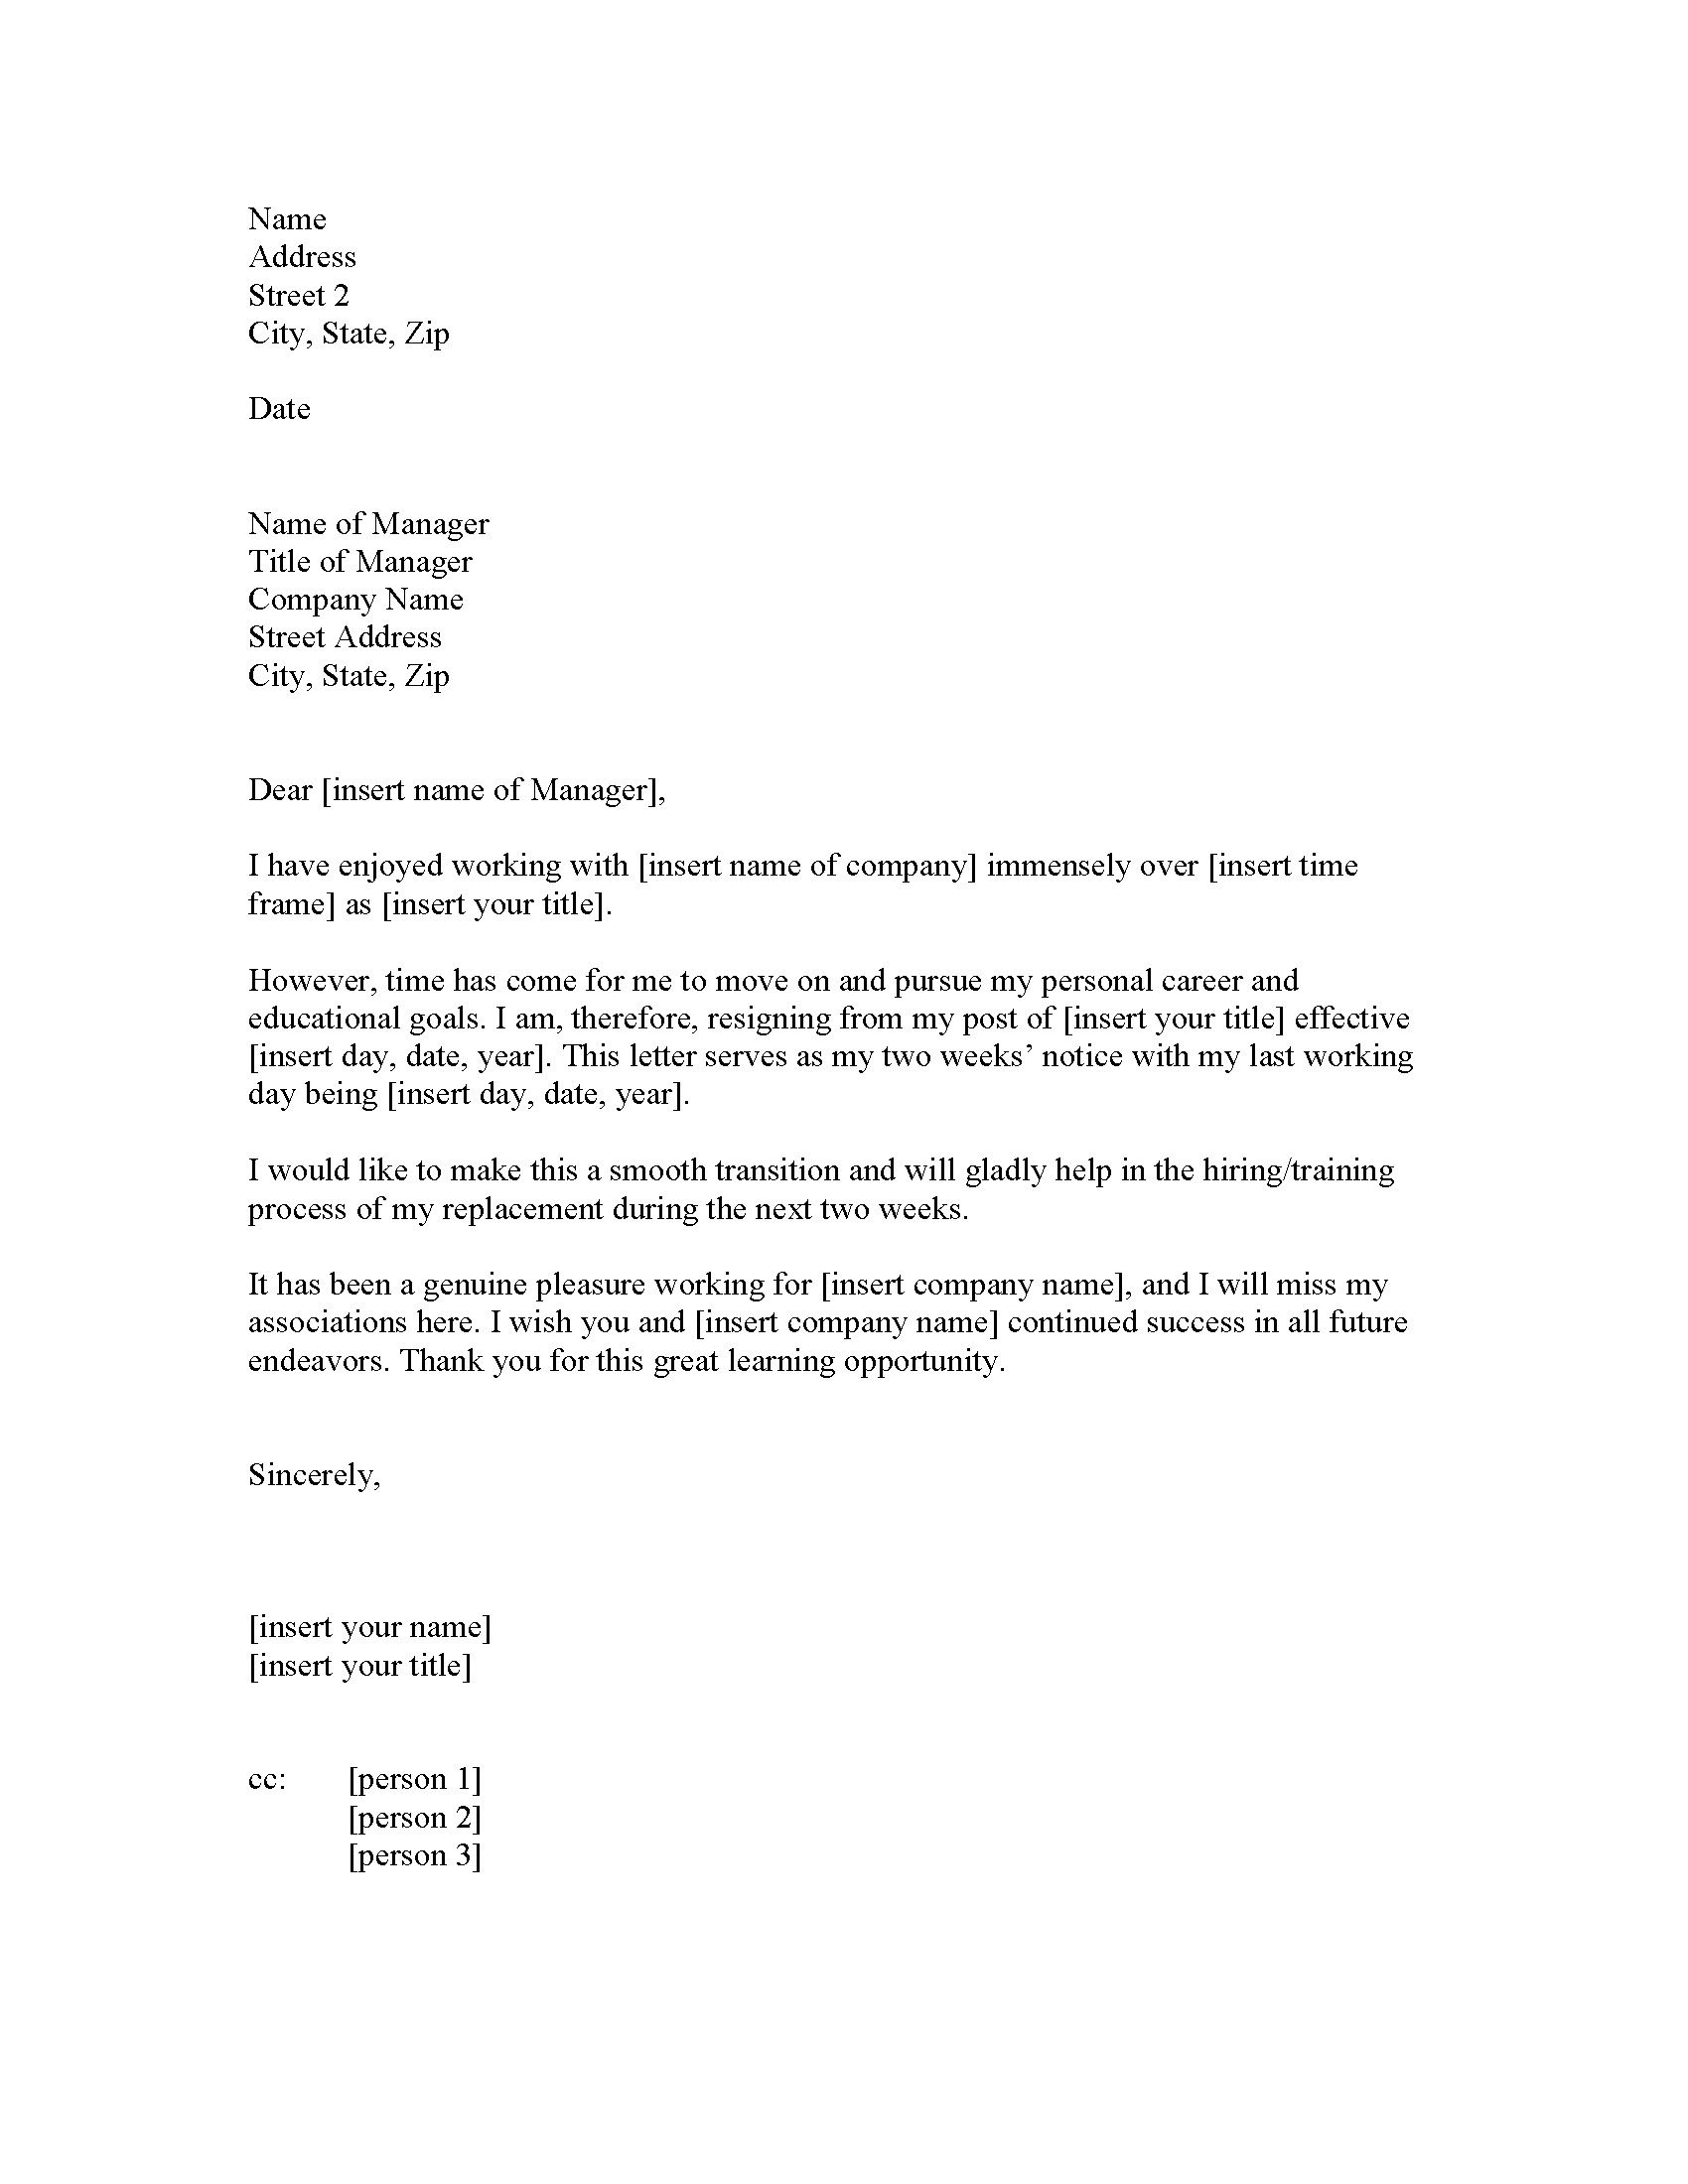 Resignation Letter Samples | 2 Weeks Notice Letter Samples Simple Resignation Letter Sample Weeks